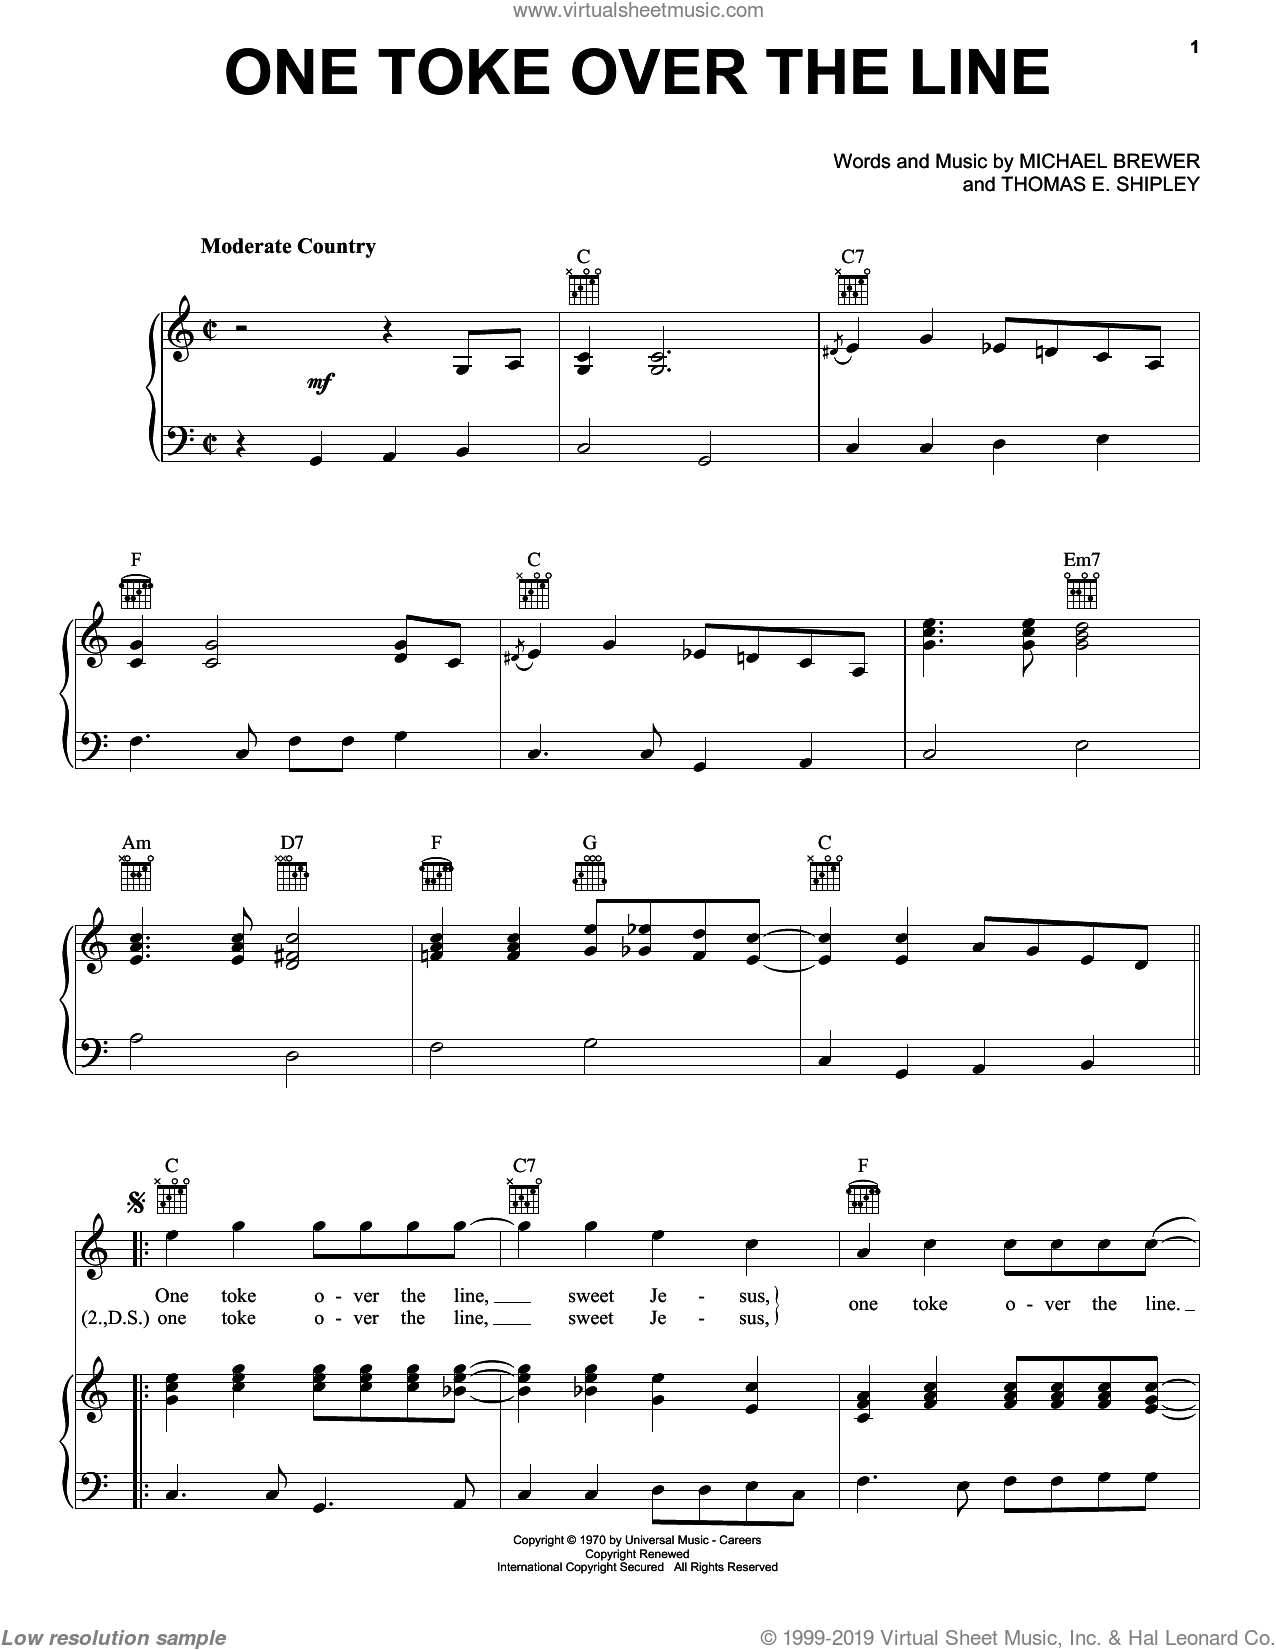 One Toke Over The Line sheet music for voice, piano or guitar by Brewer & Shipley, Michael Brewer and Thomas E. Shipley, intermediate skill level